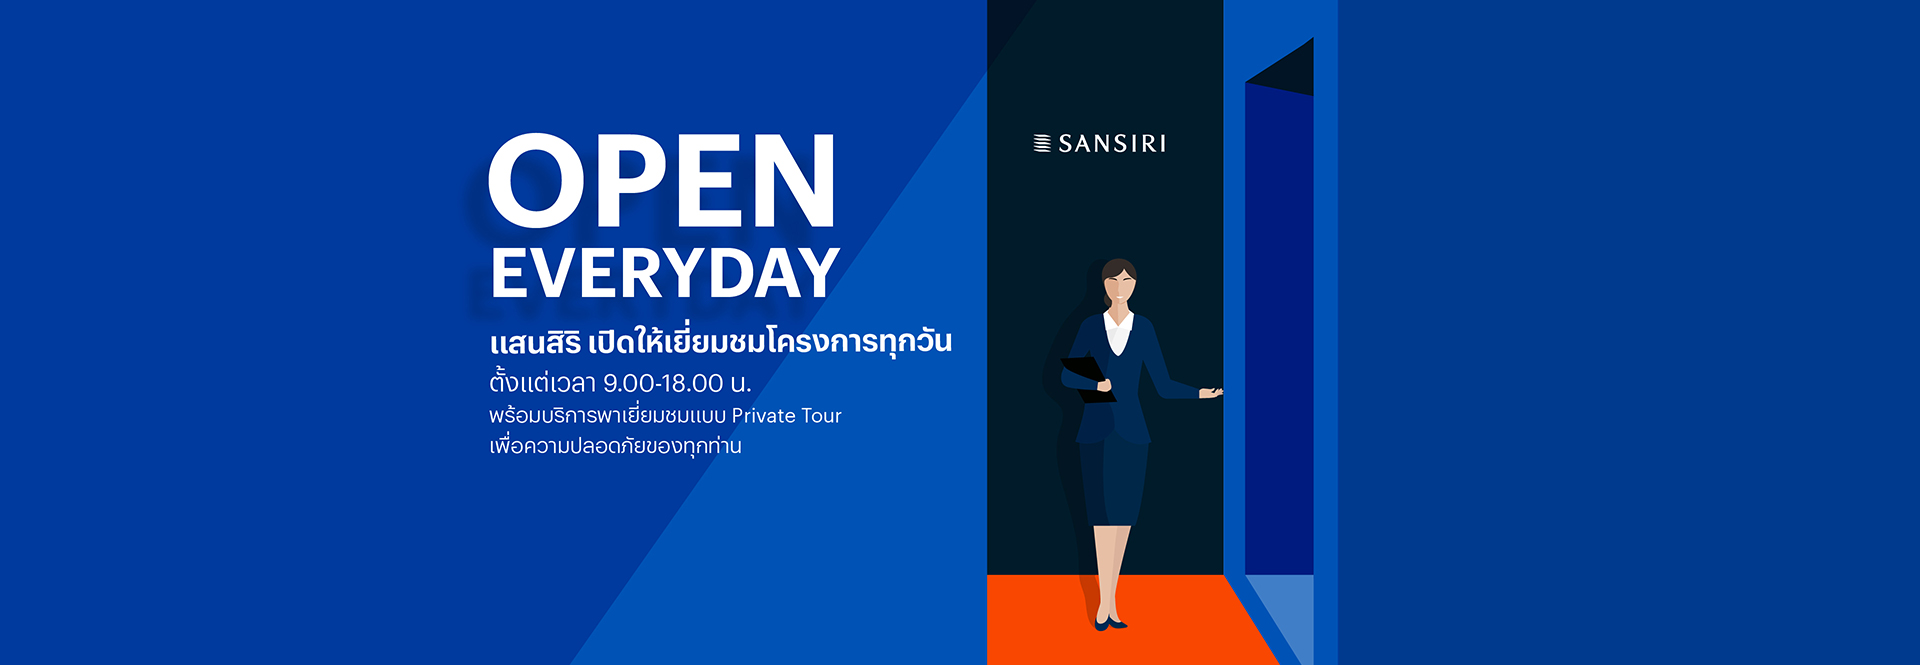 Sansiri Open Everyday Single house